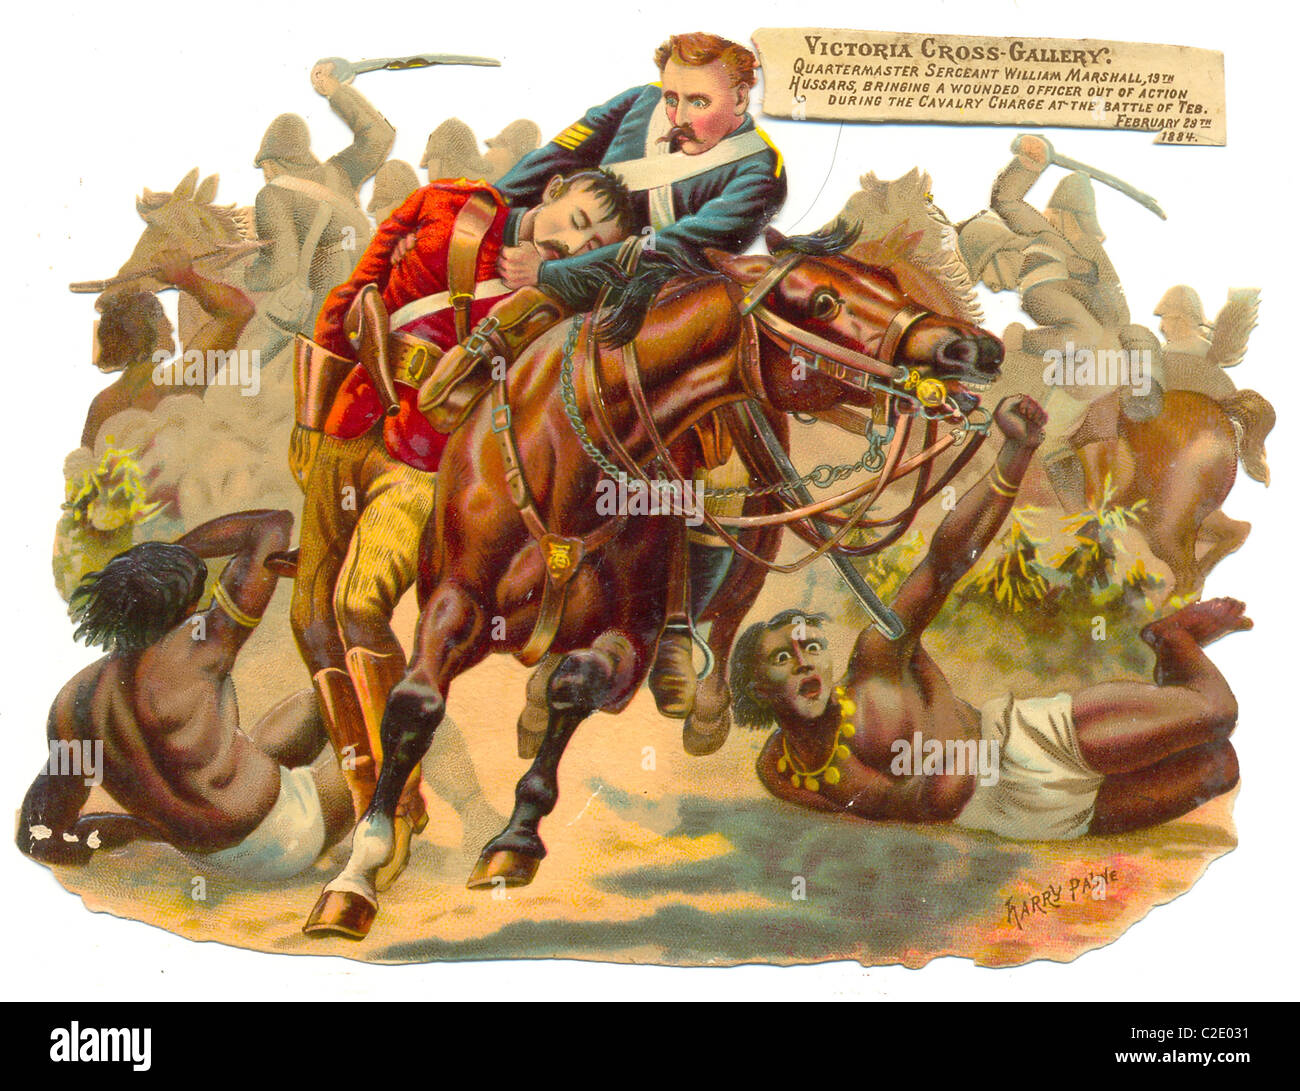 die cut scrap of 1885 showing a scene from the Battle of El Teb, Sudan, - Stock Image